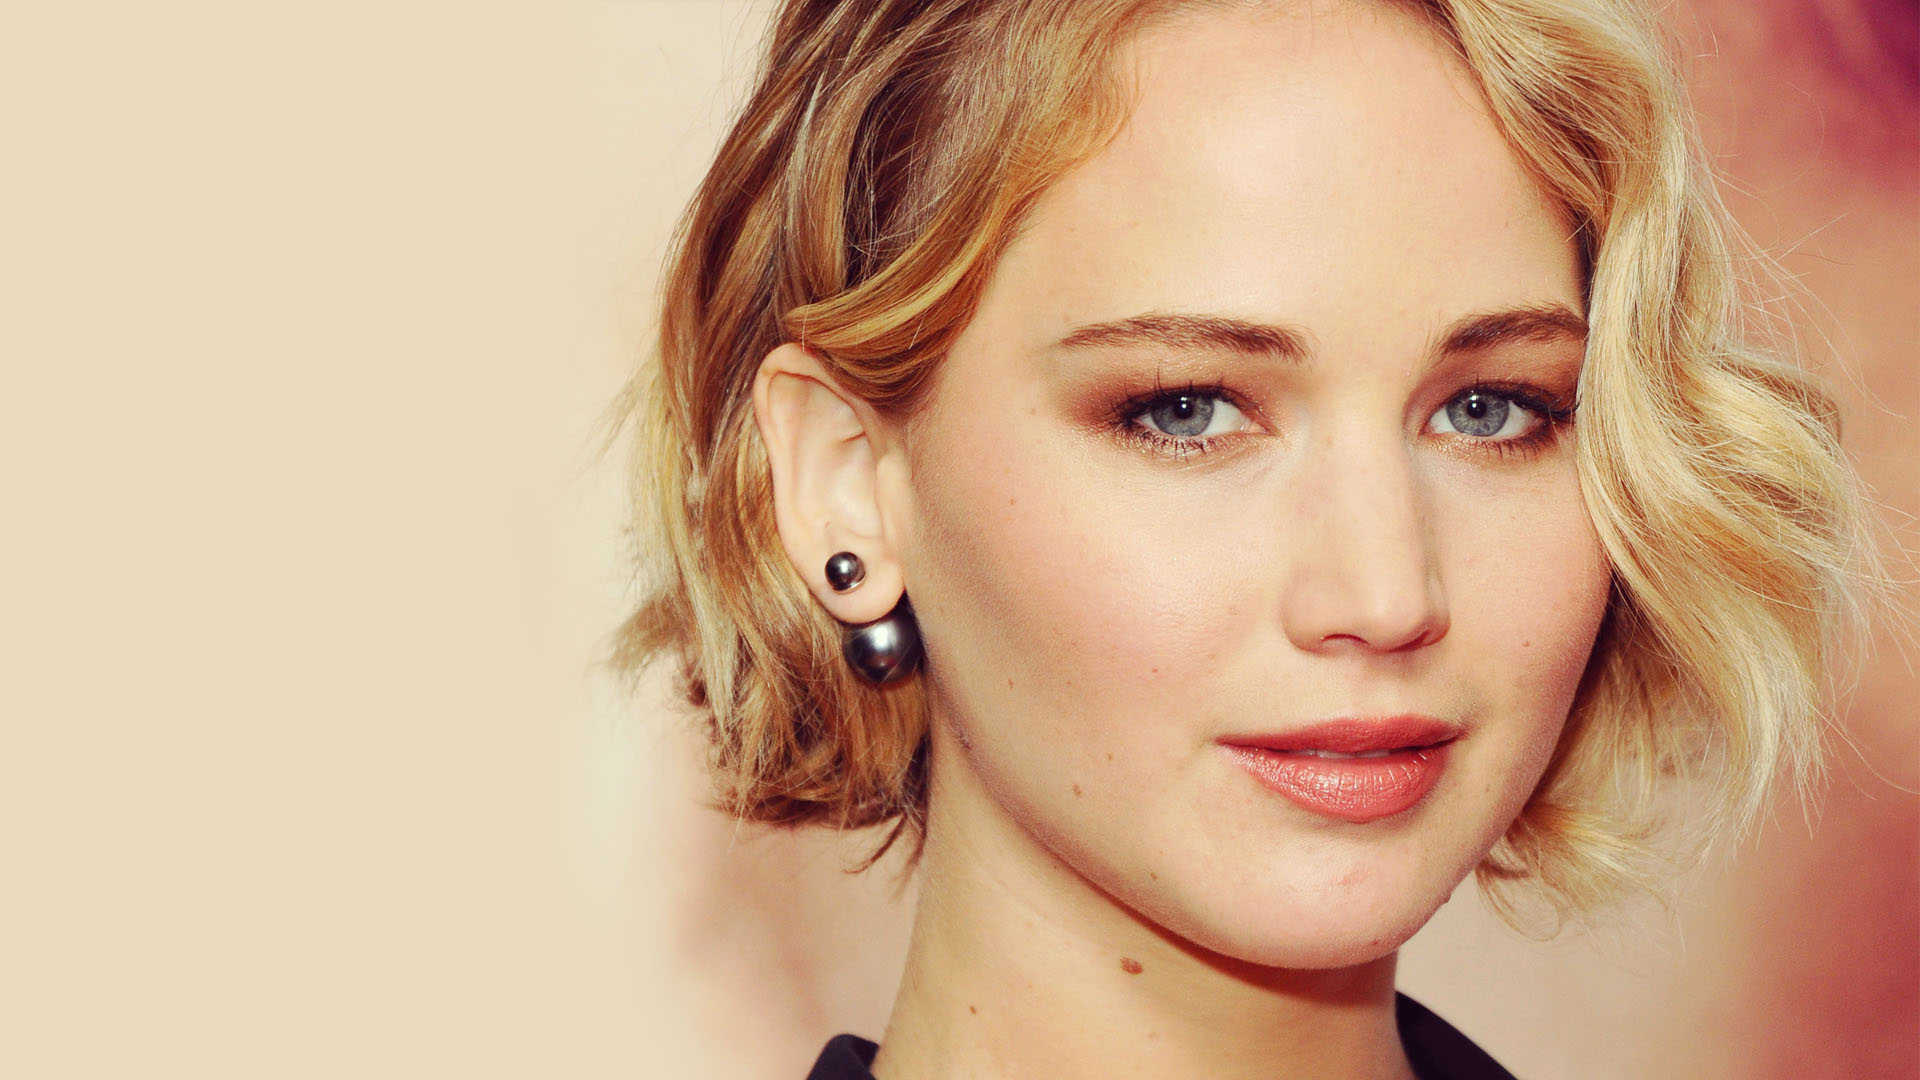 jennifer lawrence hd photo - photo #28